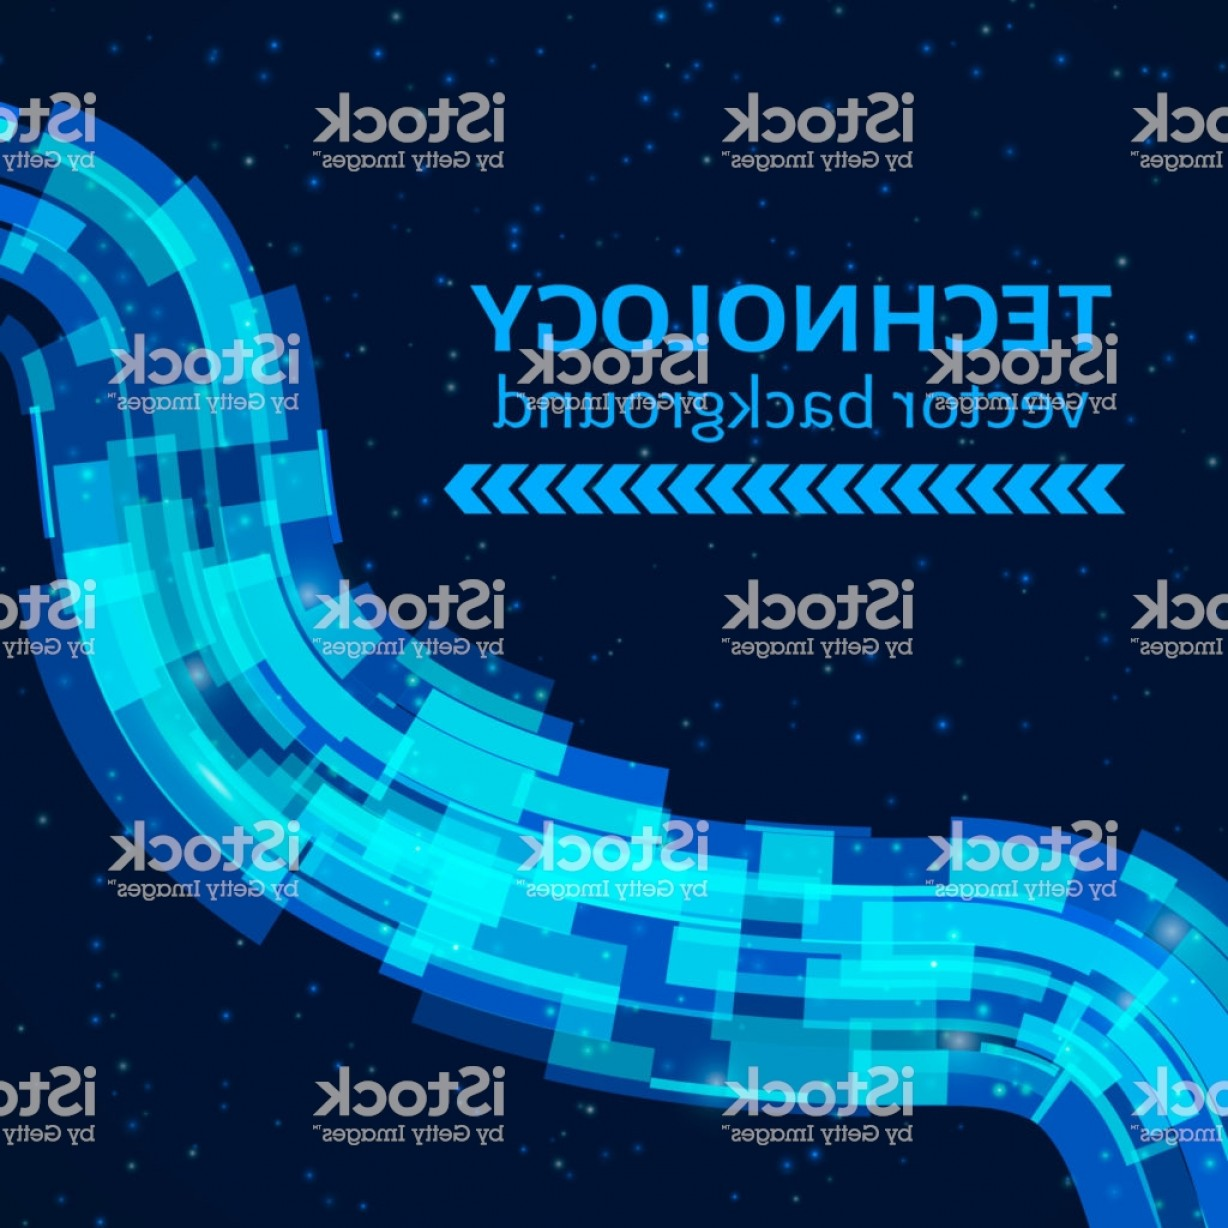 Blue Technology Vector Illustration: Blue Technology Abstract Background Cosmic Vector Illustration Easy To Edit Design Gm